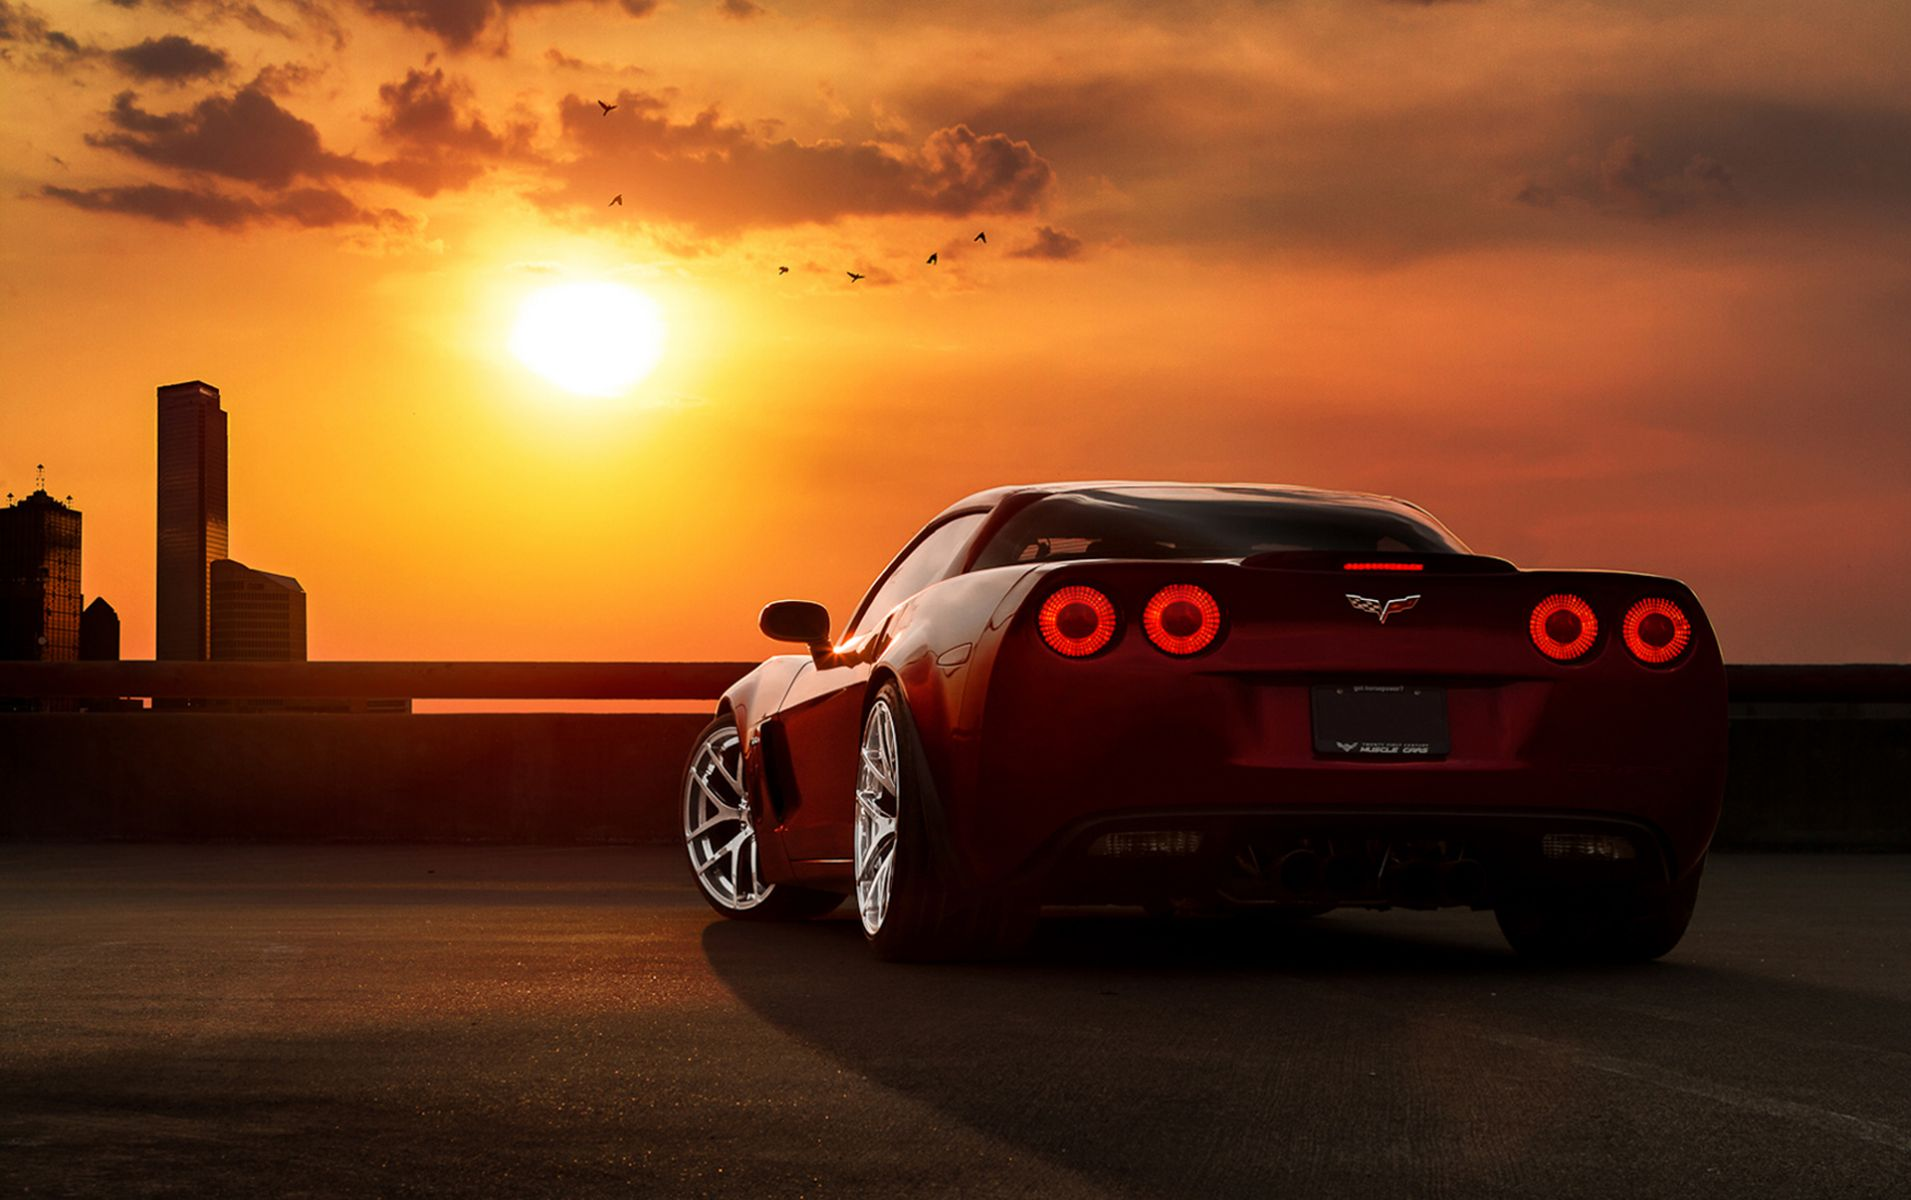 Amazing Concept Car in Sunset | HD Other Cars Wallpapers for Mobile ...